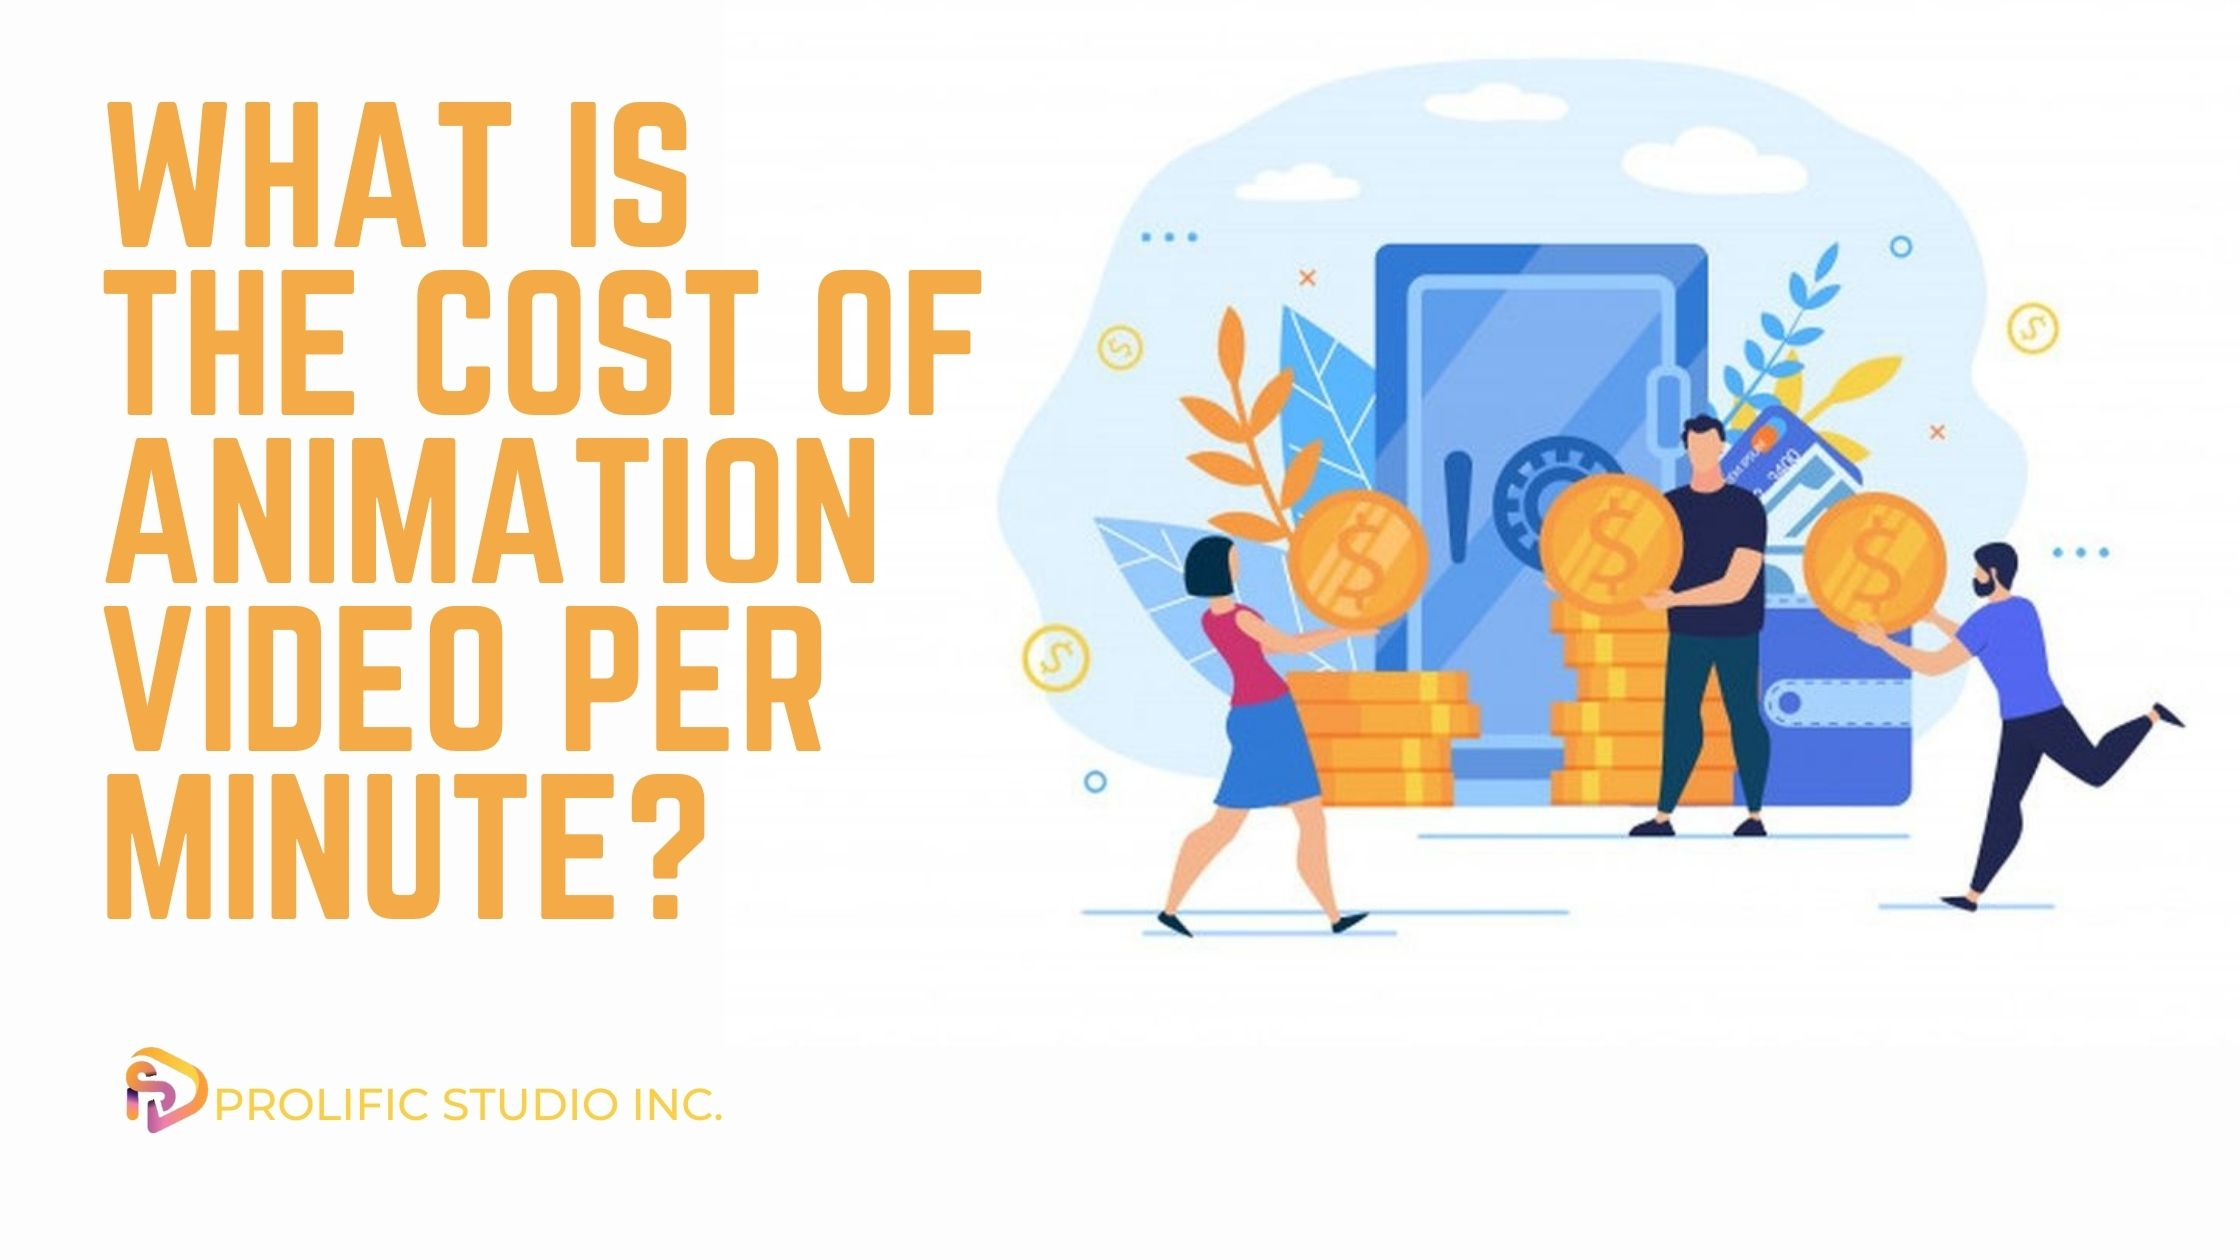 Cost of Animation